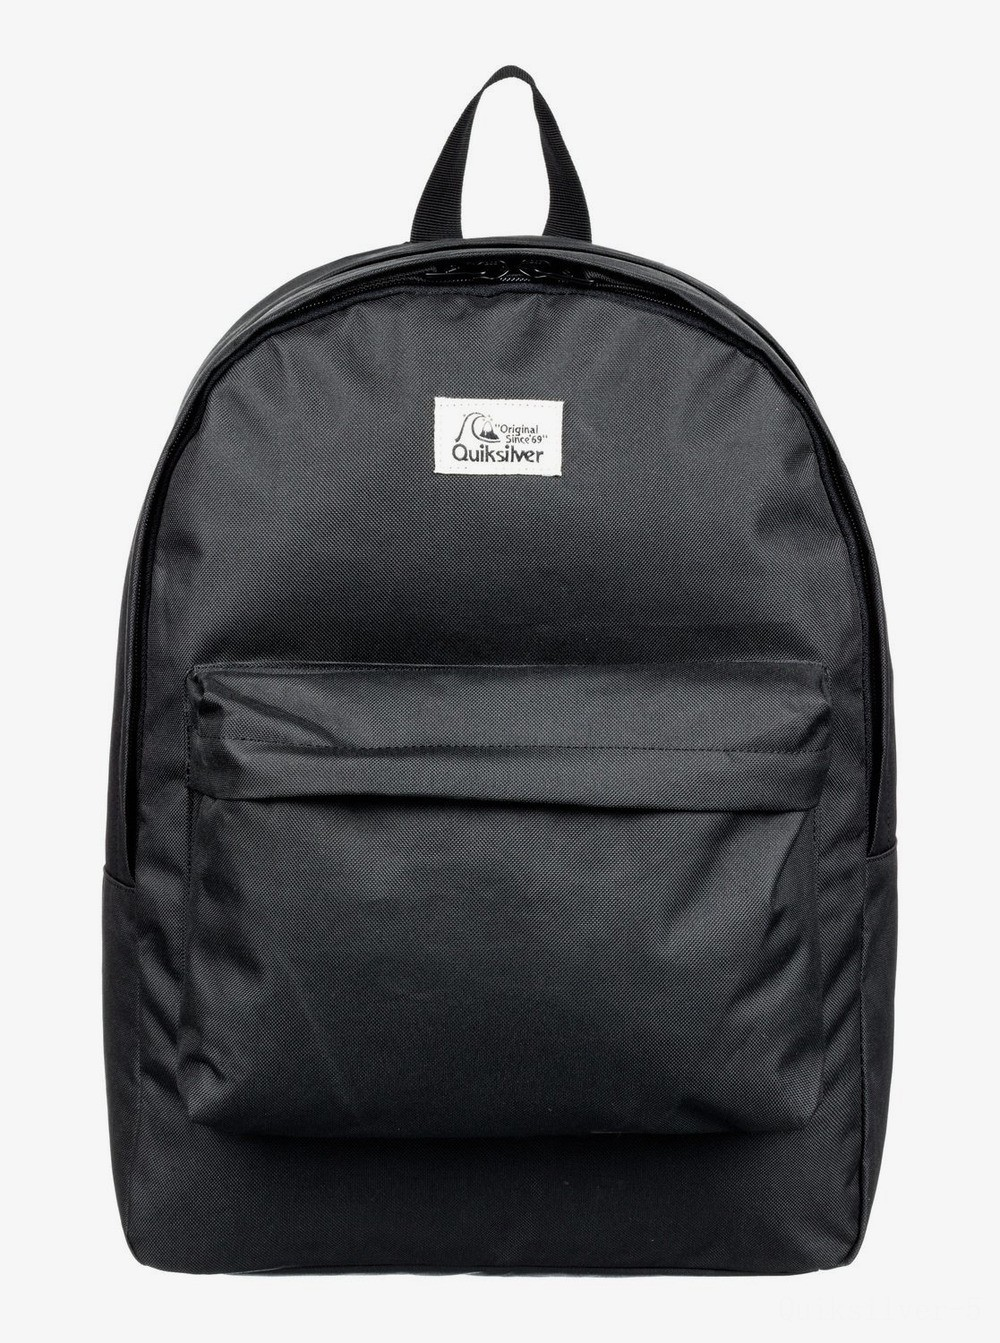 last chance everyday poster double 30l large backpack - black limited sale best price